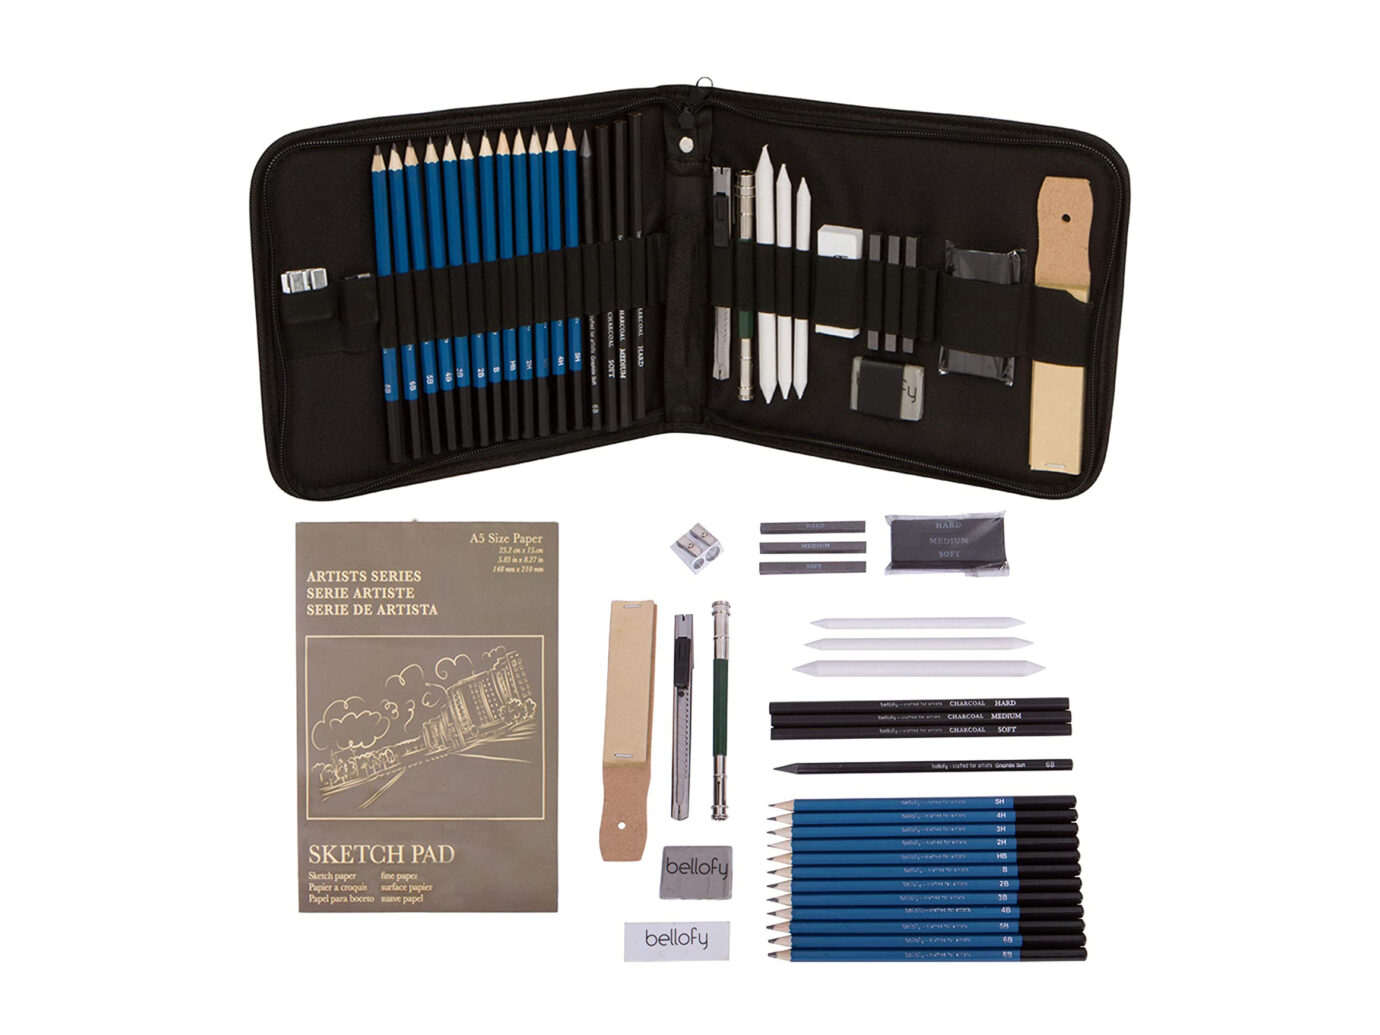 Bellofy Professional Drawing Kit